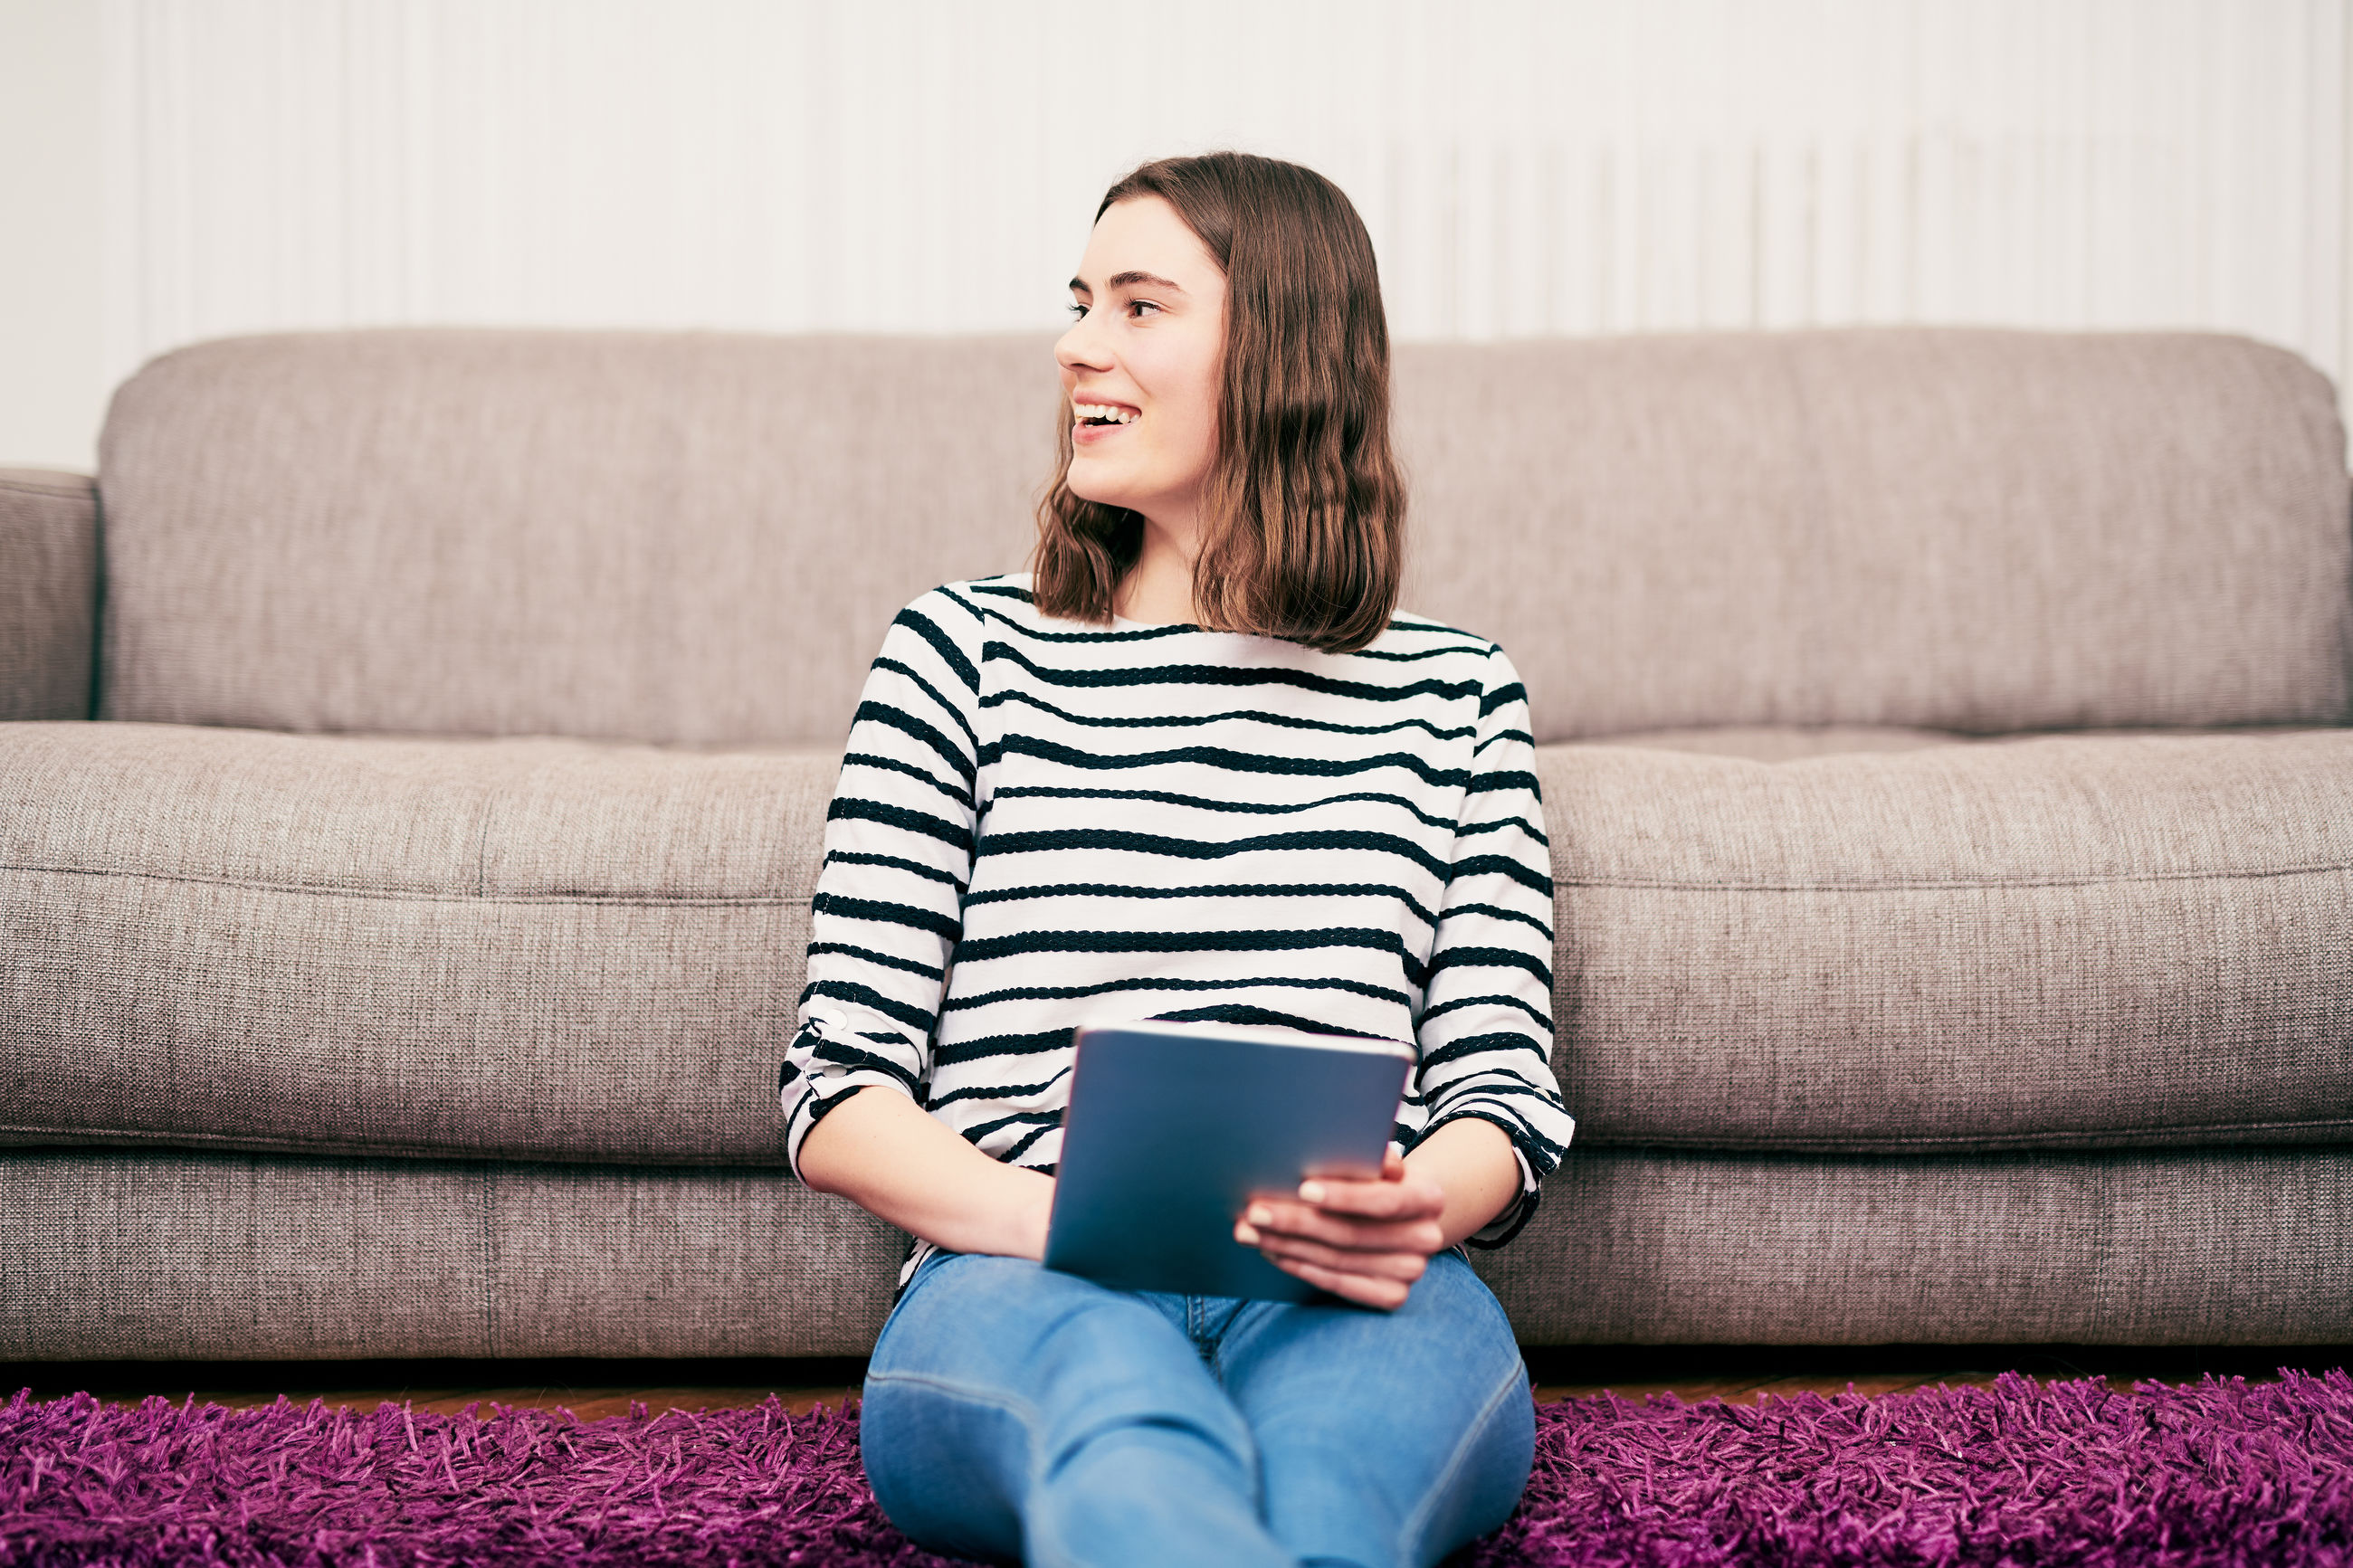 Smiling woman using digital tablet while sitting at home